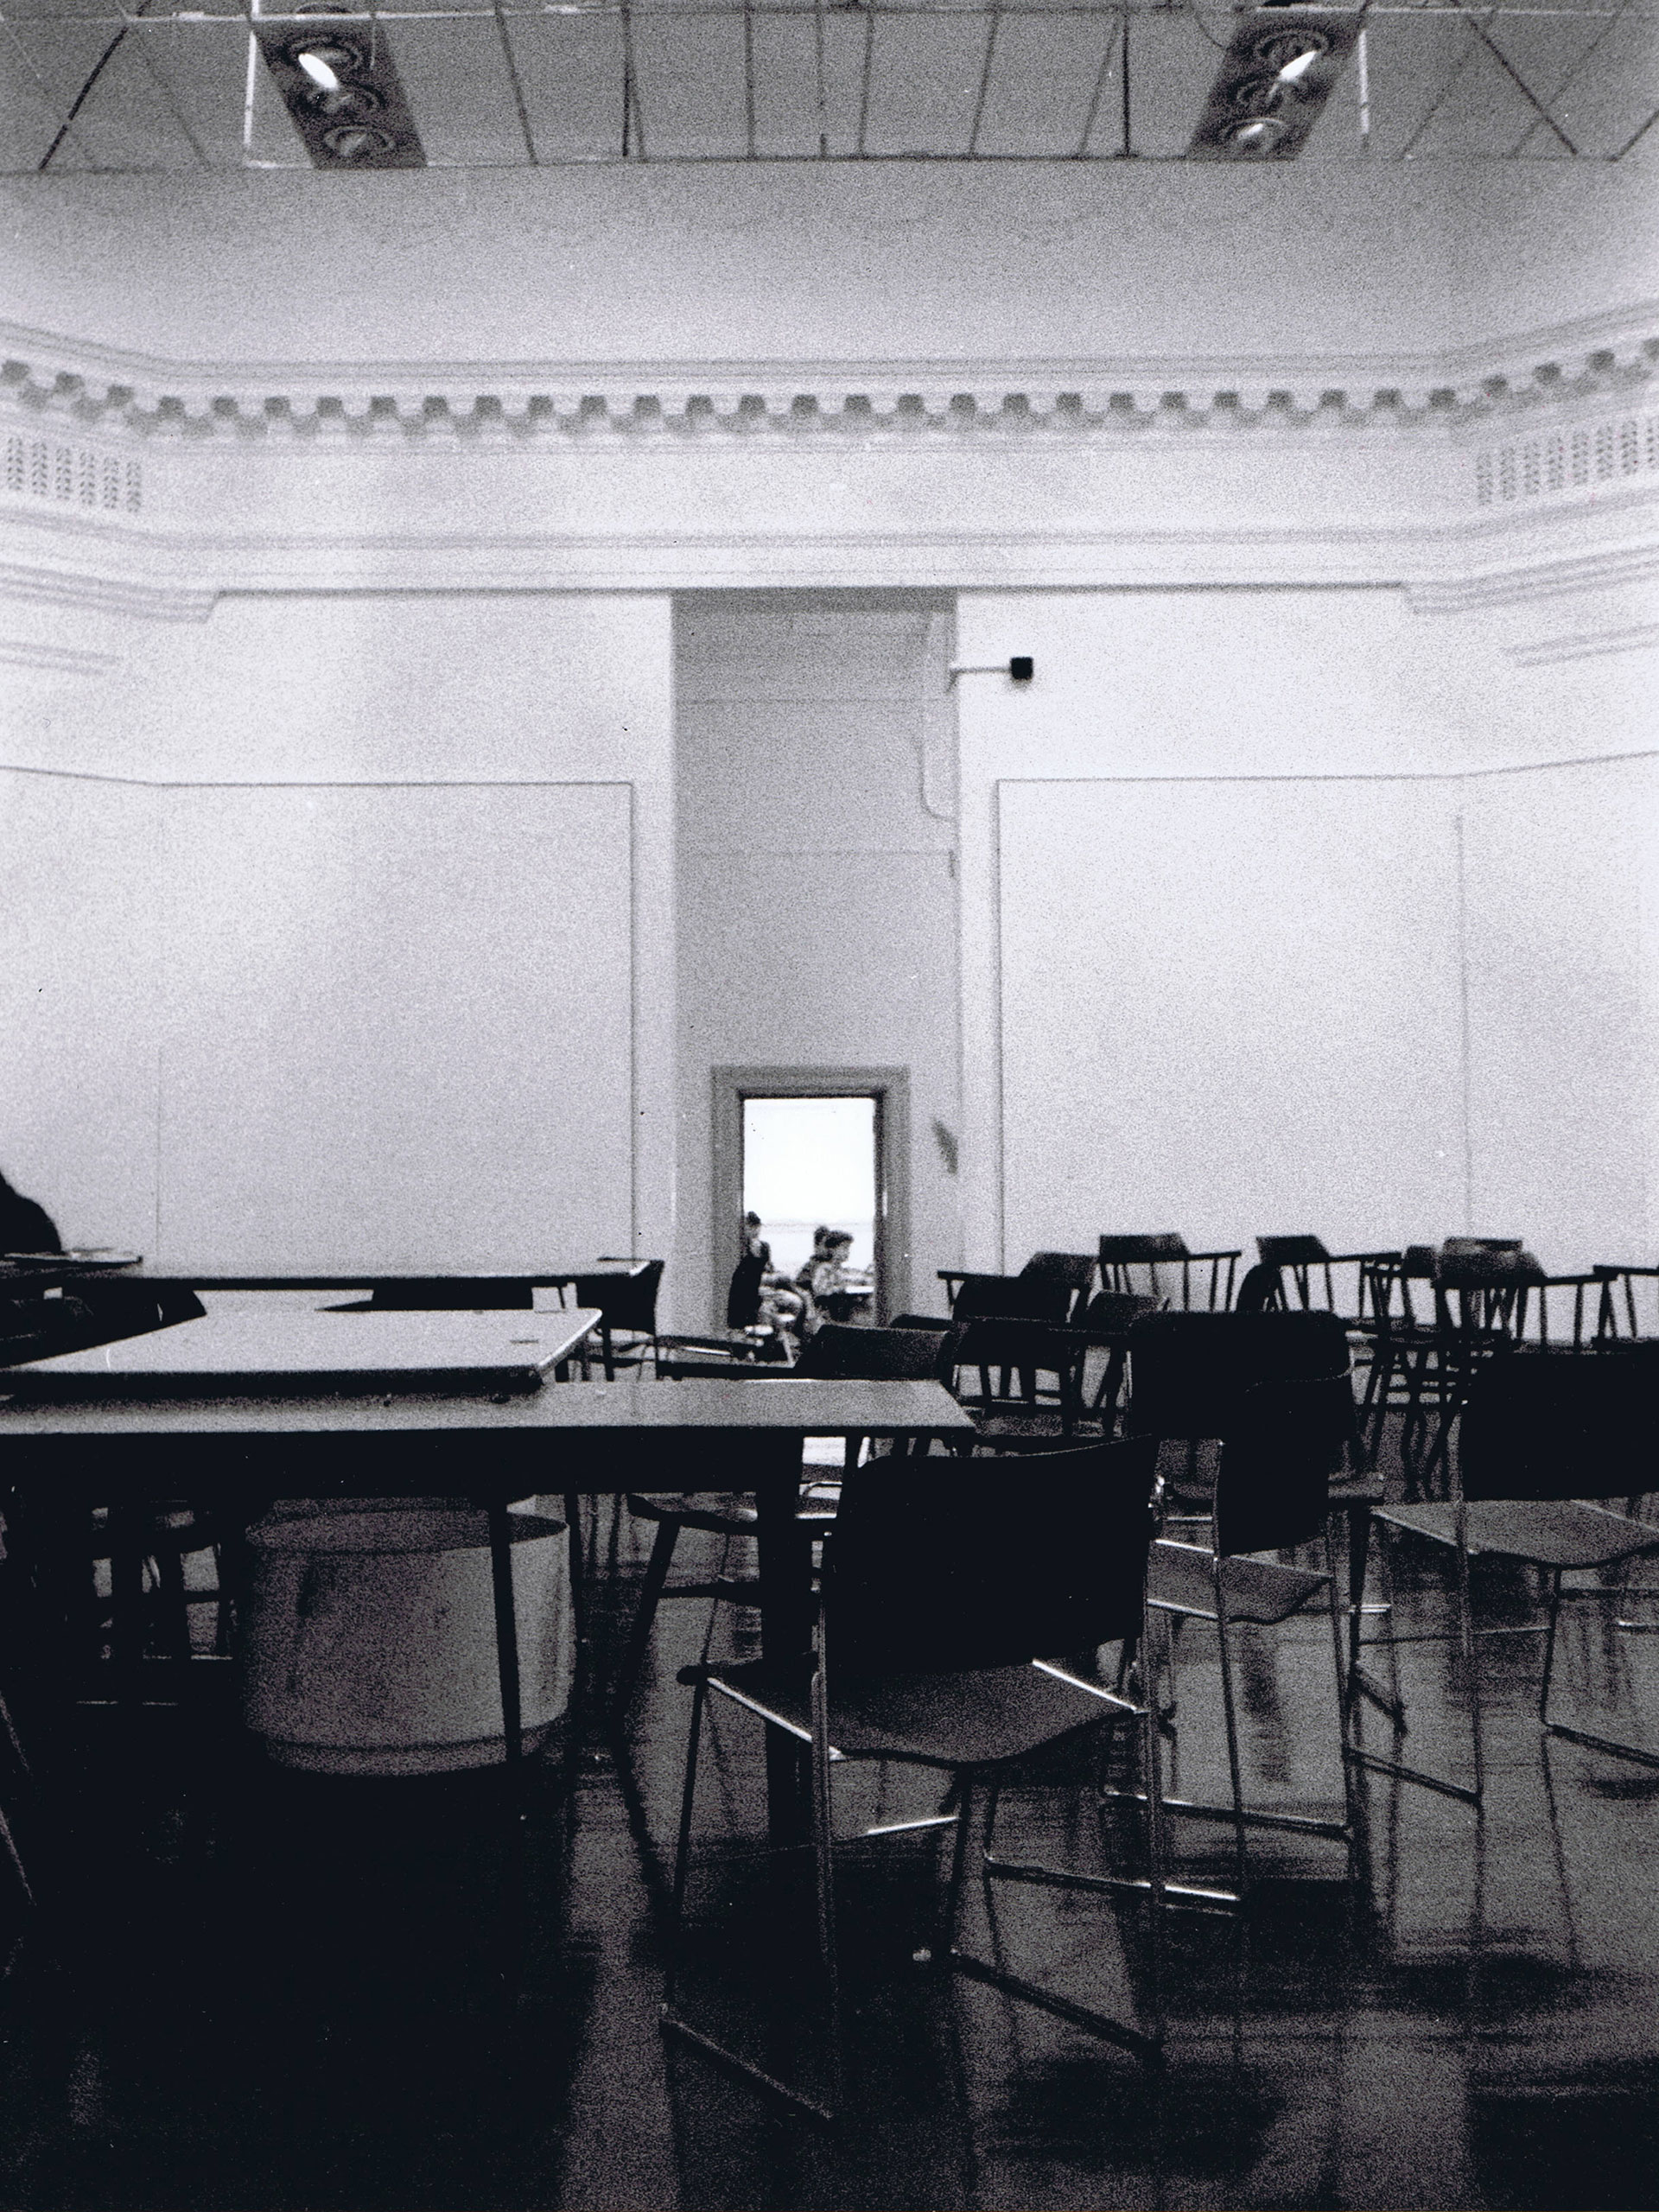 Before the renovation, the Brooks Hall rotunda had small entrances on the north and south sides. Additionally, a dropped ceiling obscured the dome from within the rotunda.